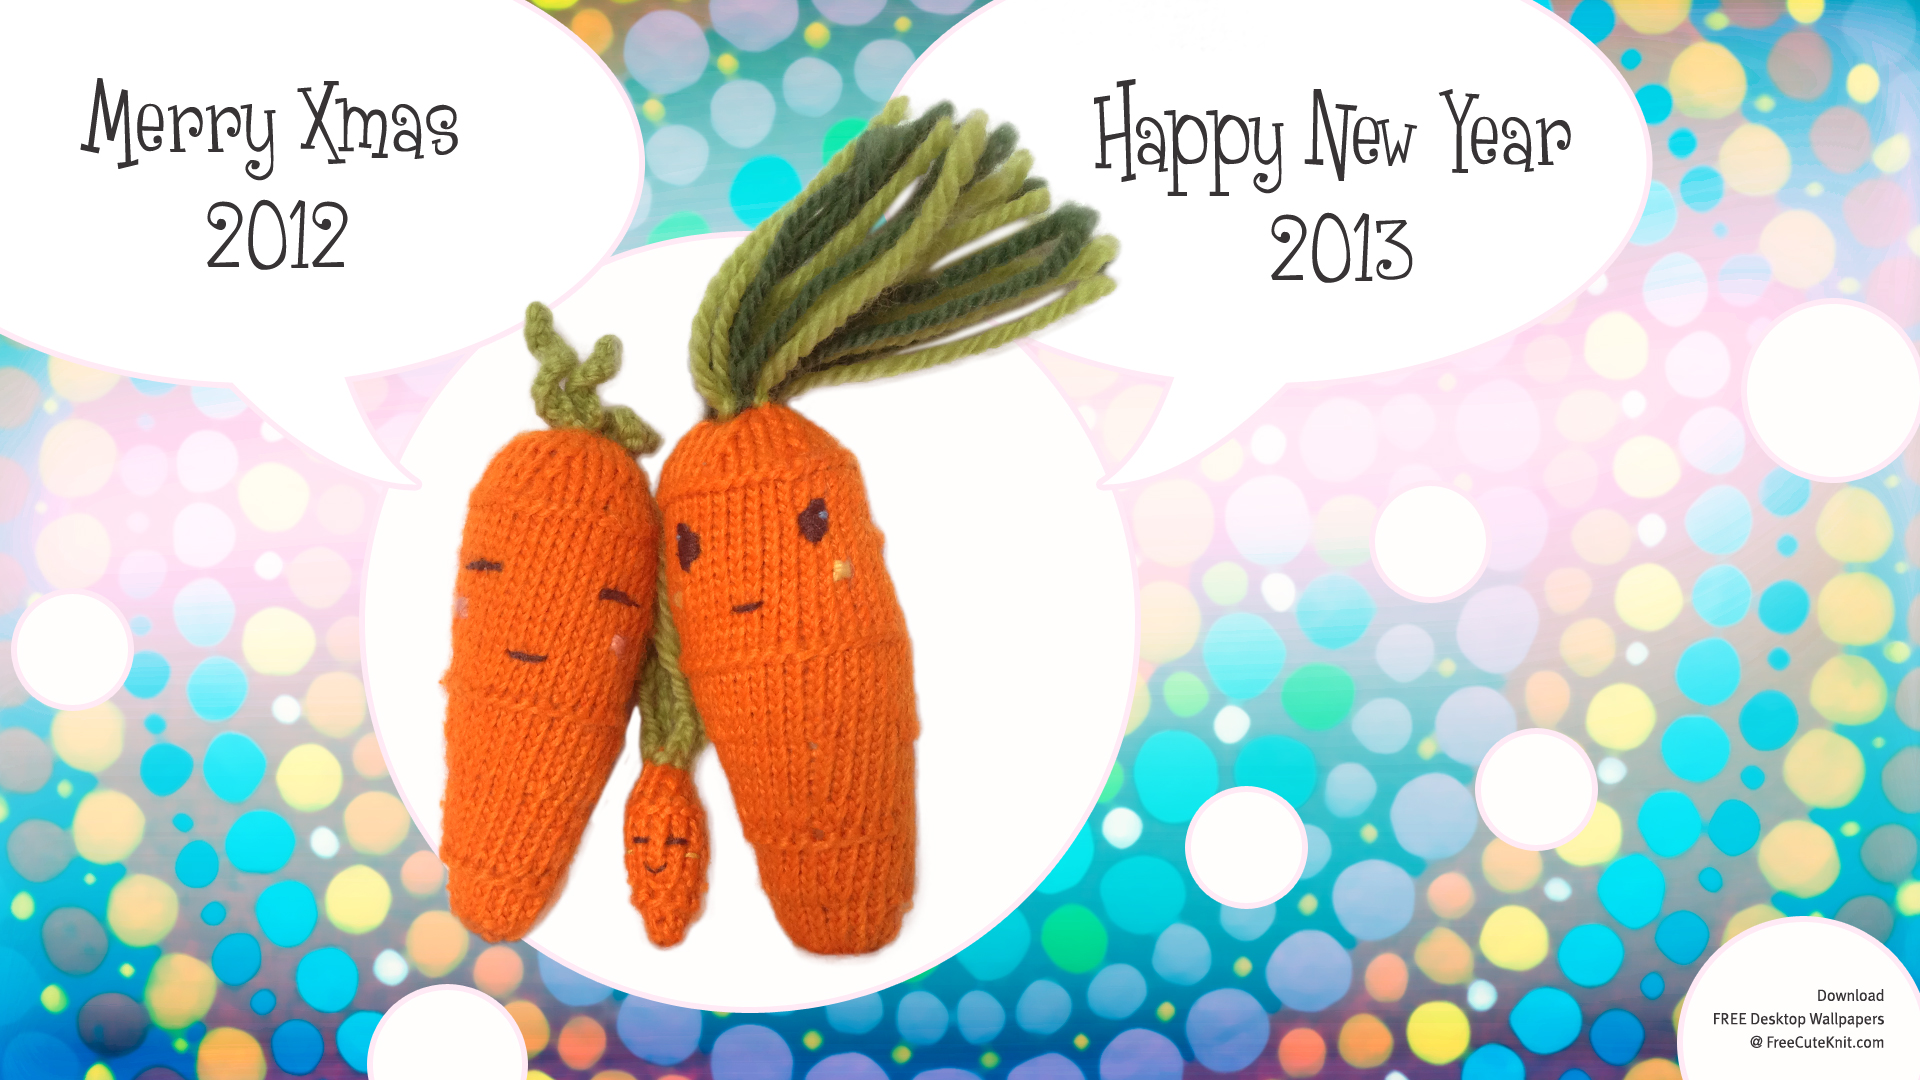 Free Desktop Wallpaper Carrot Knitting HD